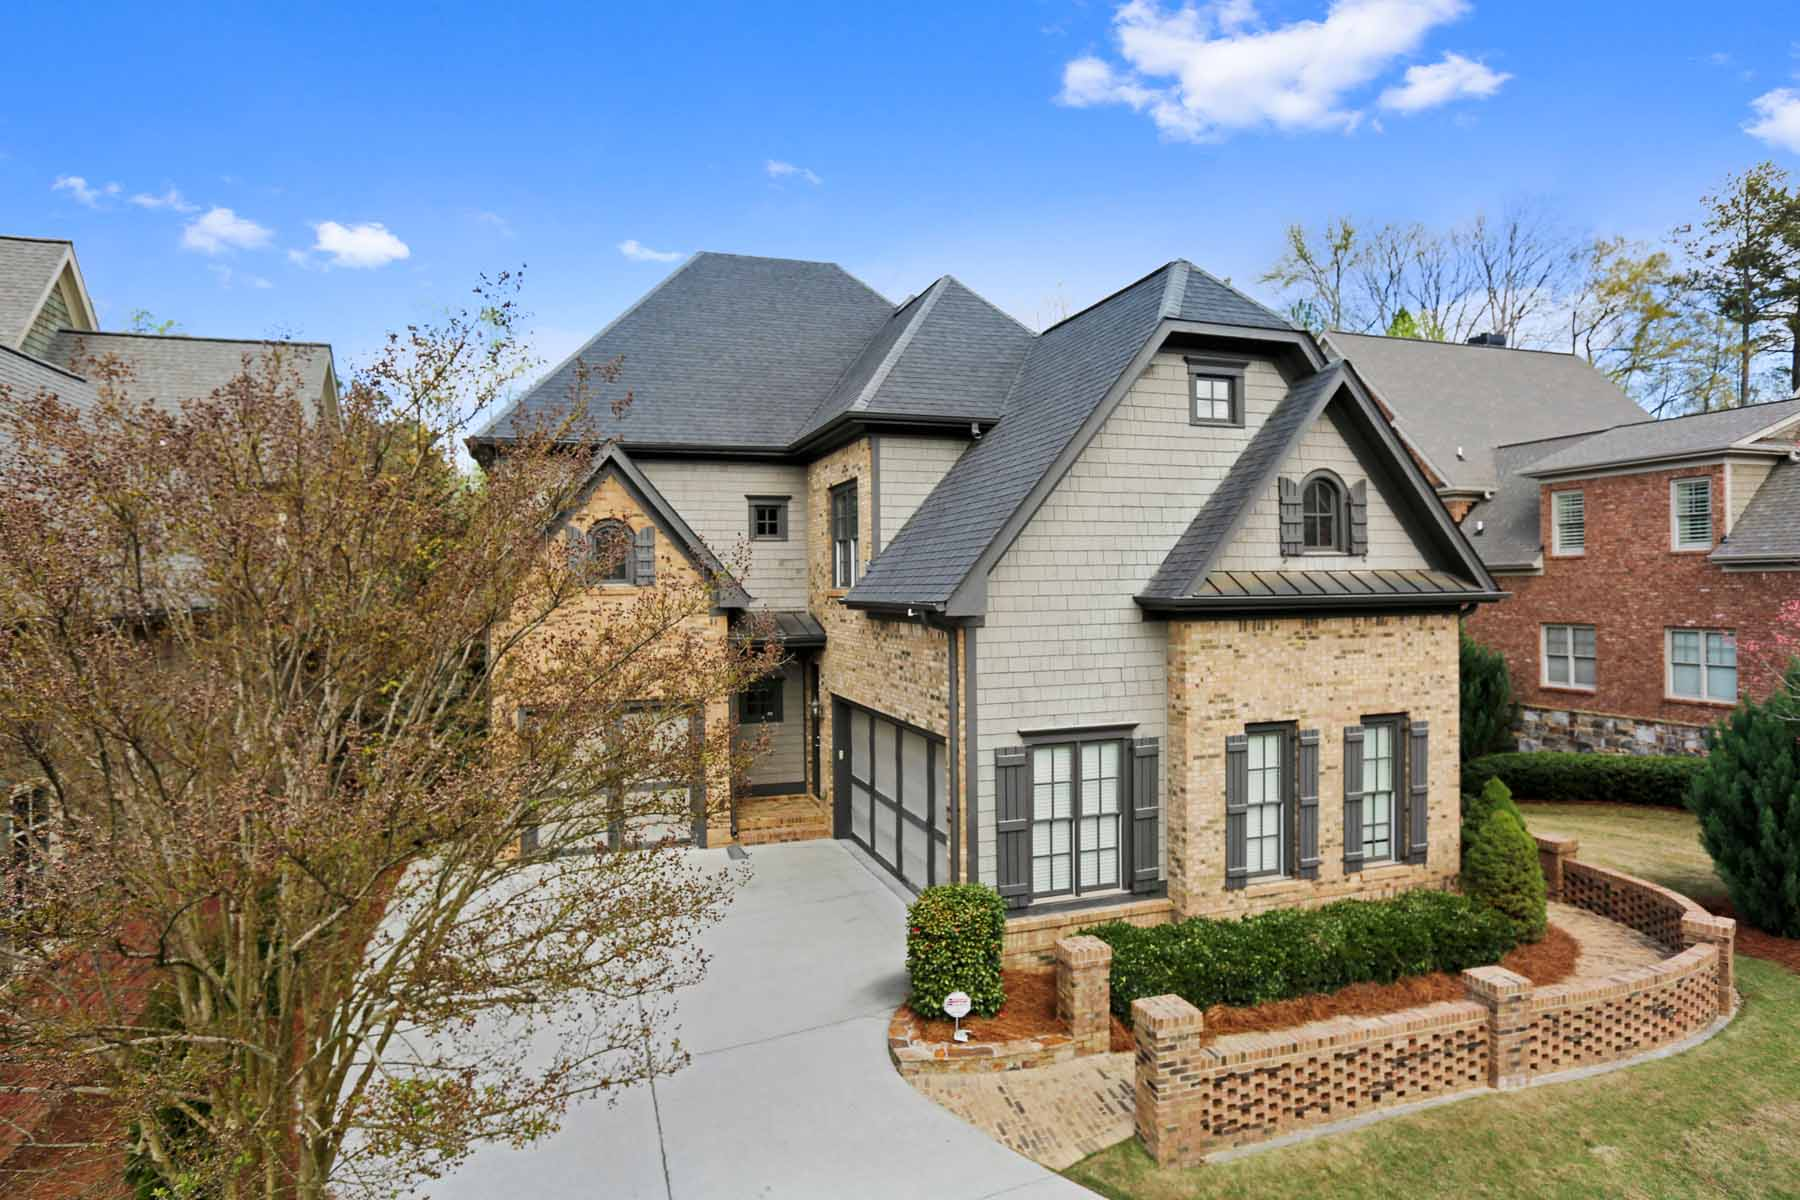 Villa per Vendita alle ore Stunning Home in Gated Community 5206 Creek Walk Circle Peachtree Corners, Georgia 30092 Stati Uniti